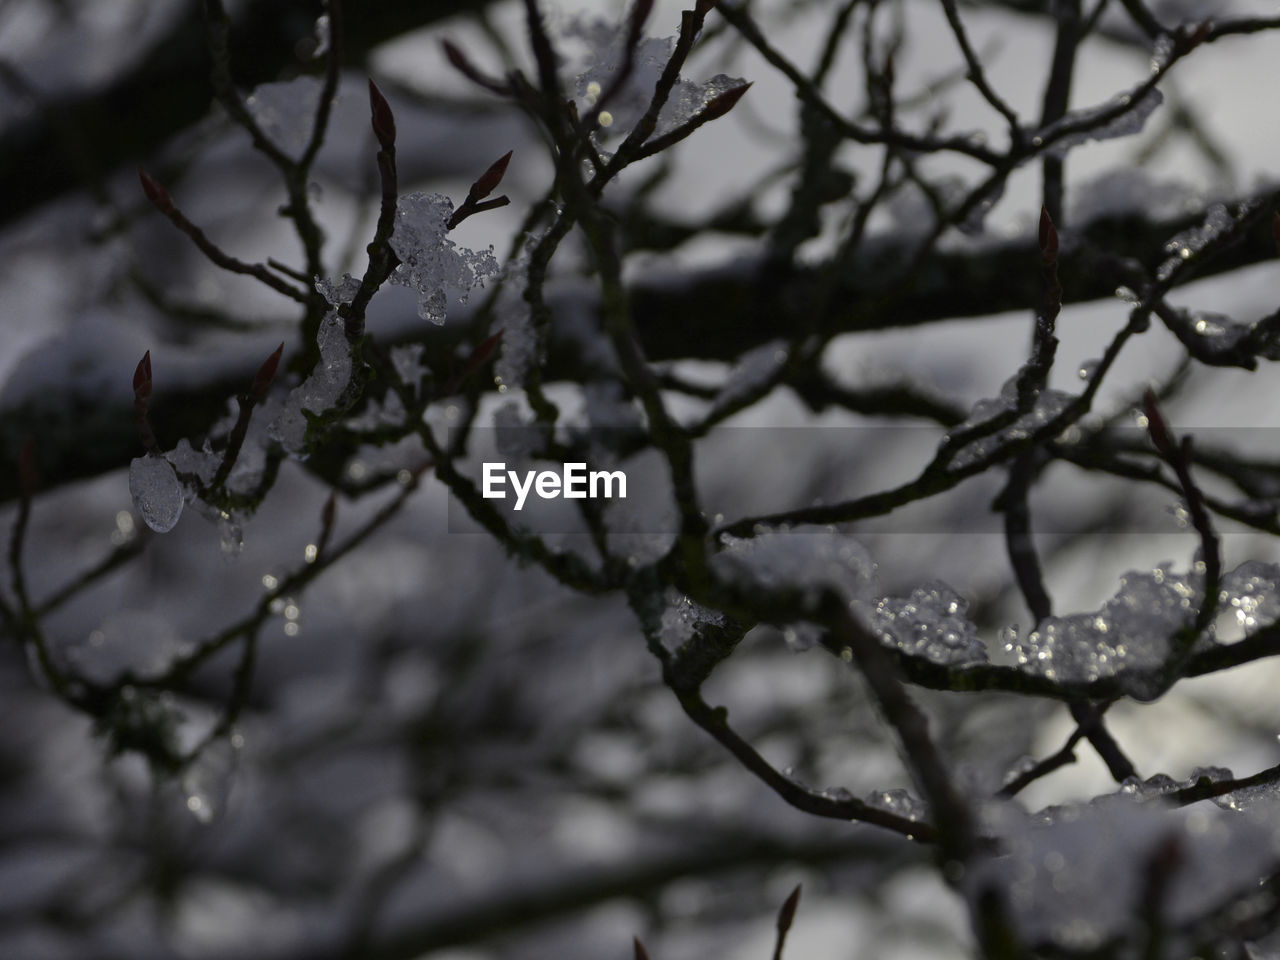 plant, beauty in nature, focus on foreground, growth, nature, no people, close-up, winter, tree, day, branch, cold temperature, outdoors, tranquility, selective focus, drop, snow, wet, raindrop